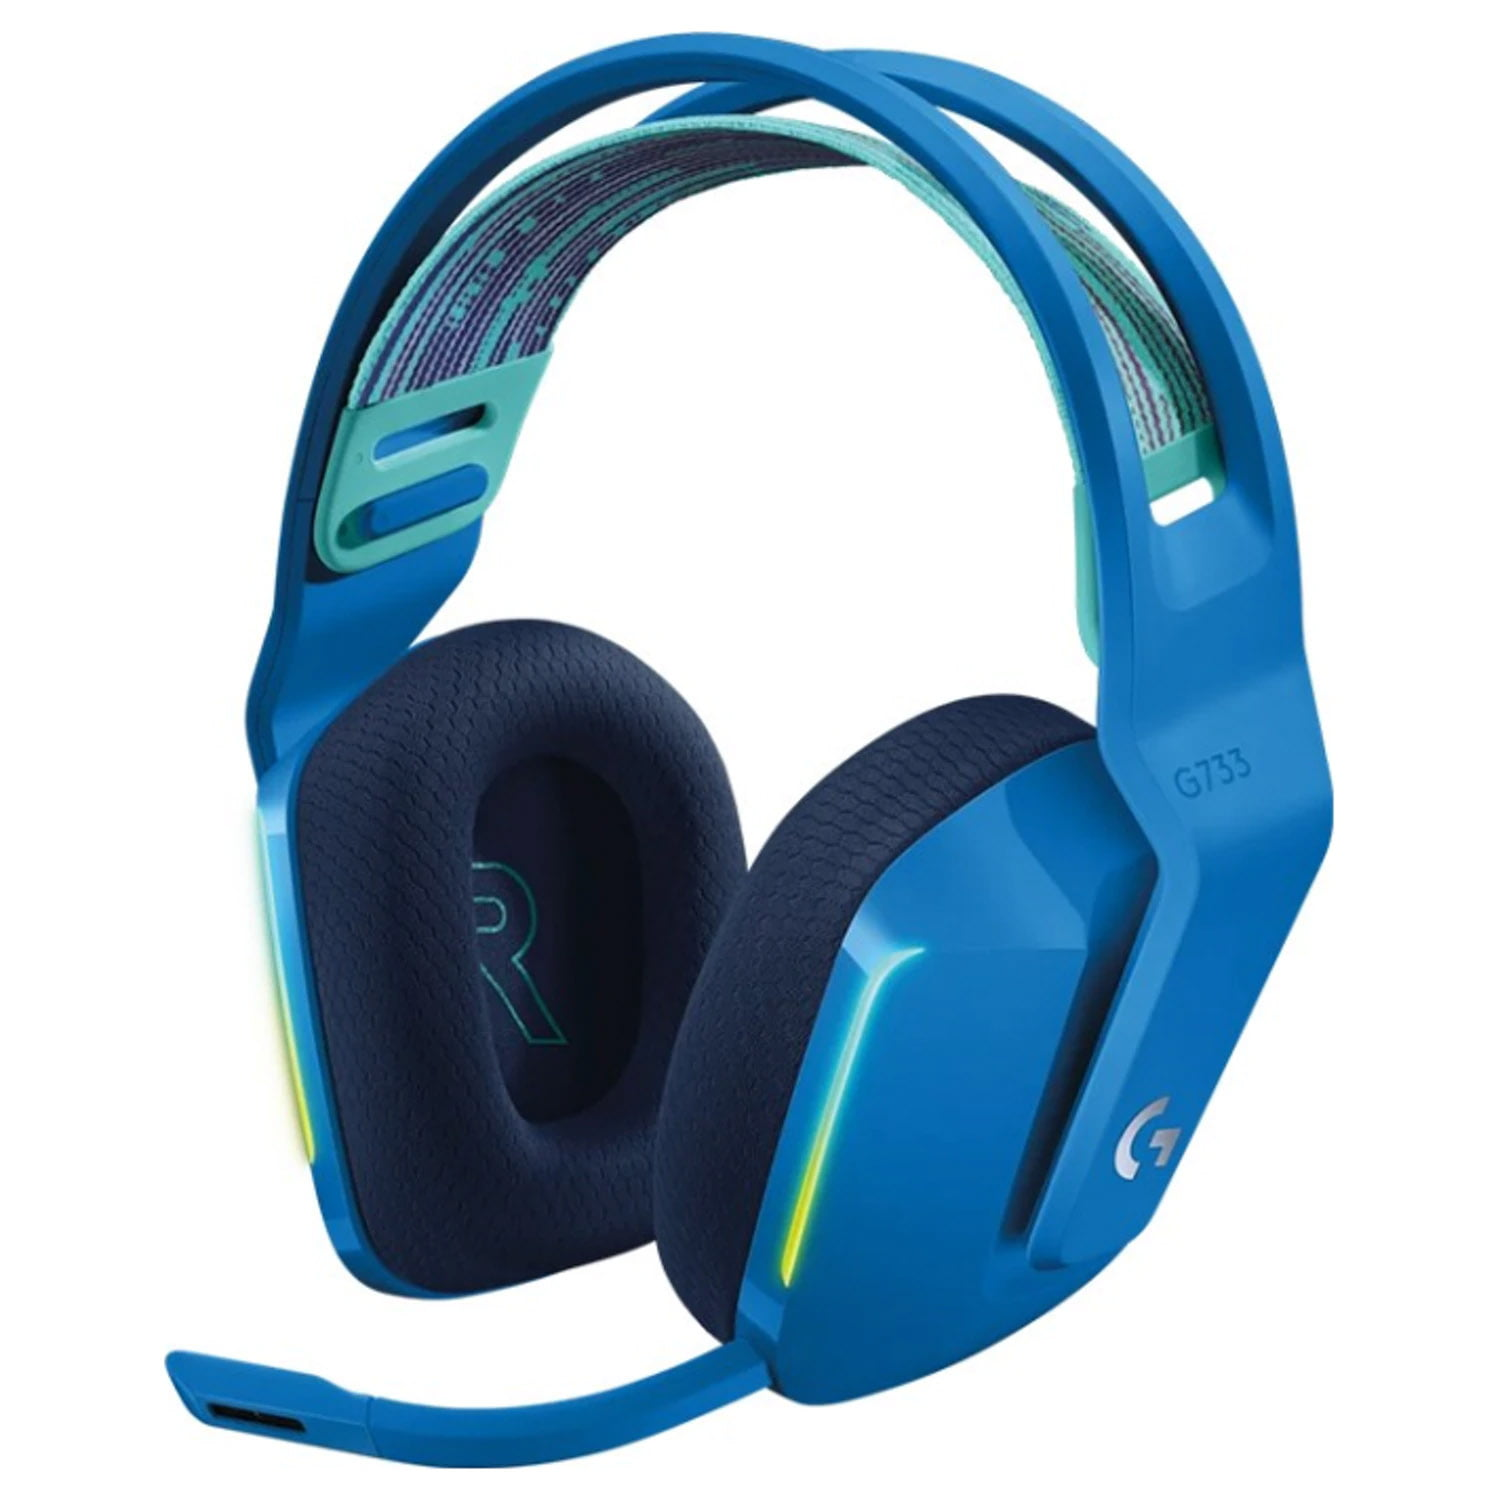 Casti audio Over-Ear Logitech G733, Gaming, Lightsync RGB, Surround Sound 7.1, Blue